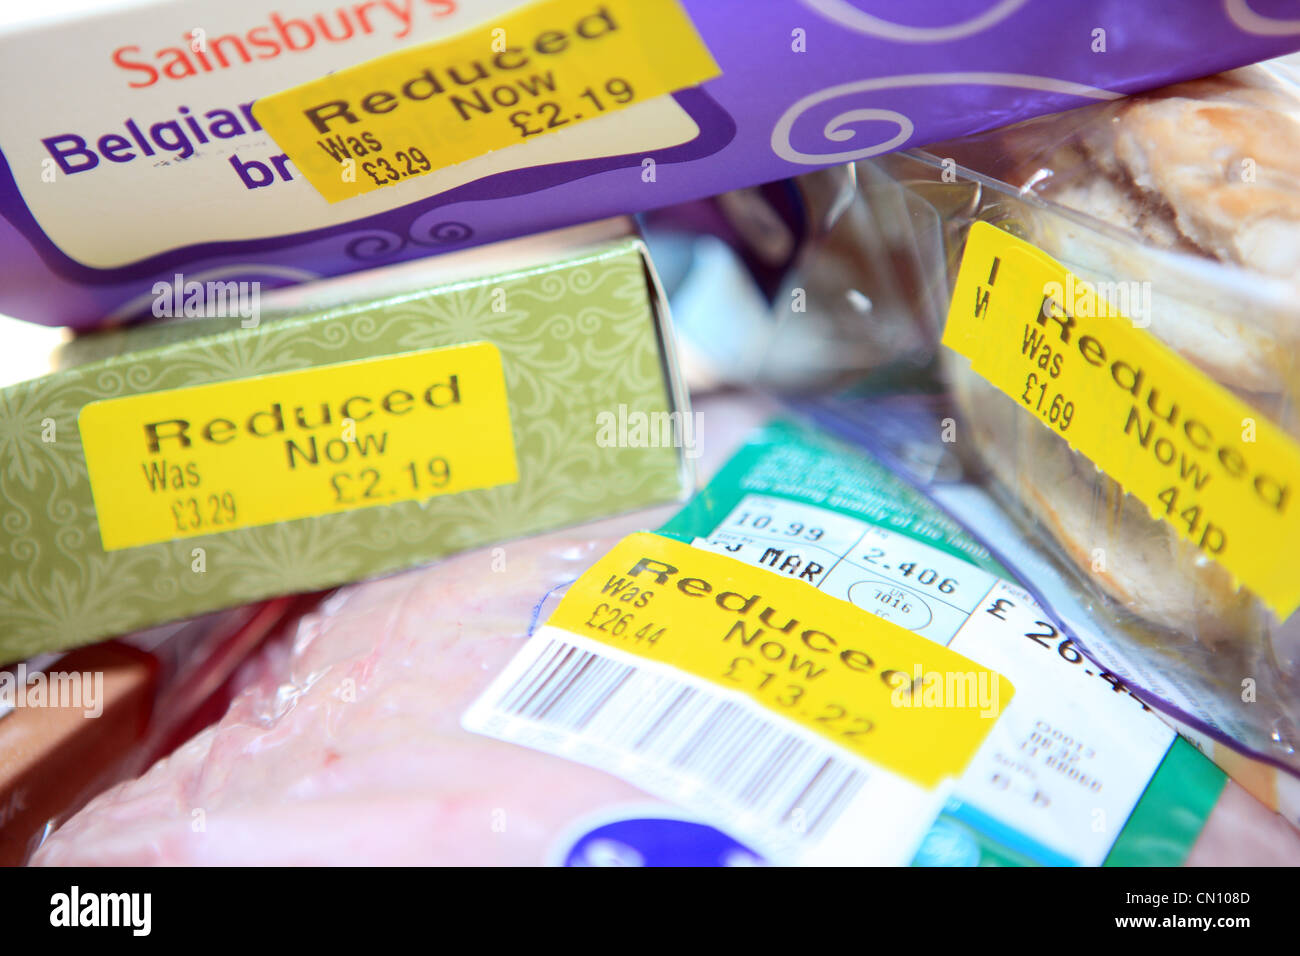 Reduced priced food items in supermarket - Stock Image